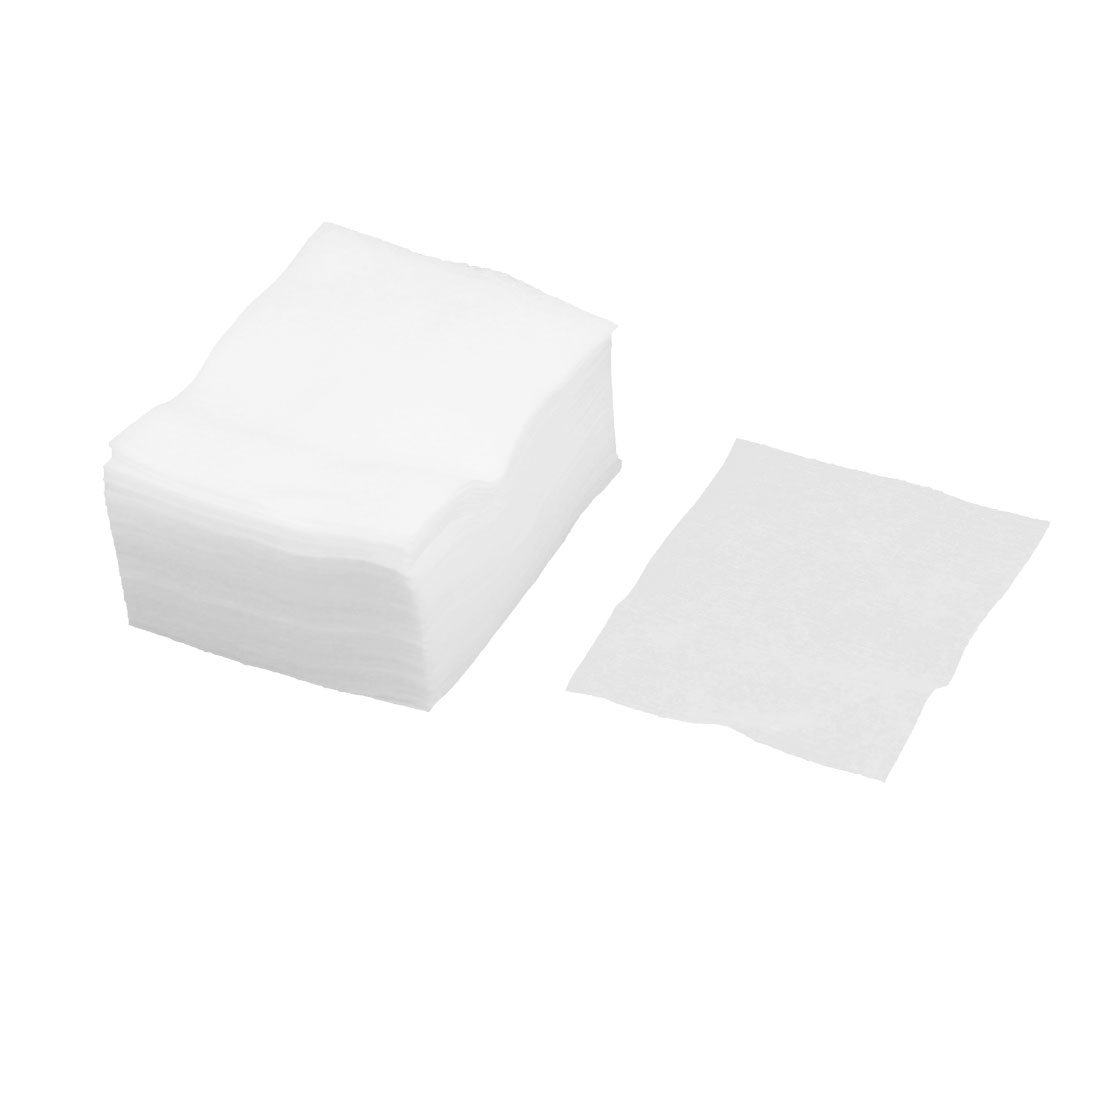 70 Pcs White Soft Rectangle 7 x 6cm Cosmetic Cotton Pads